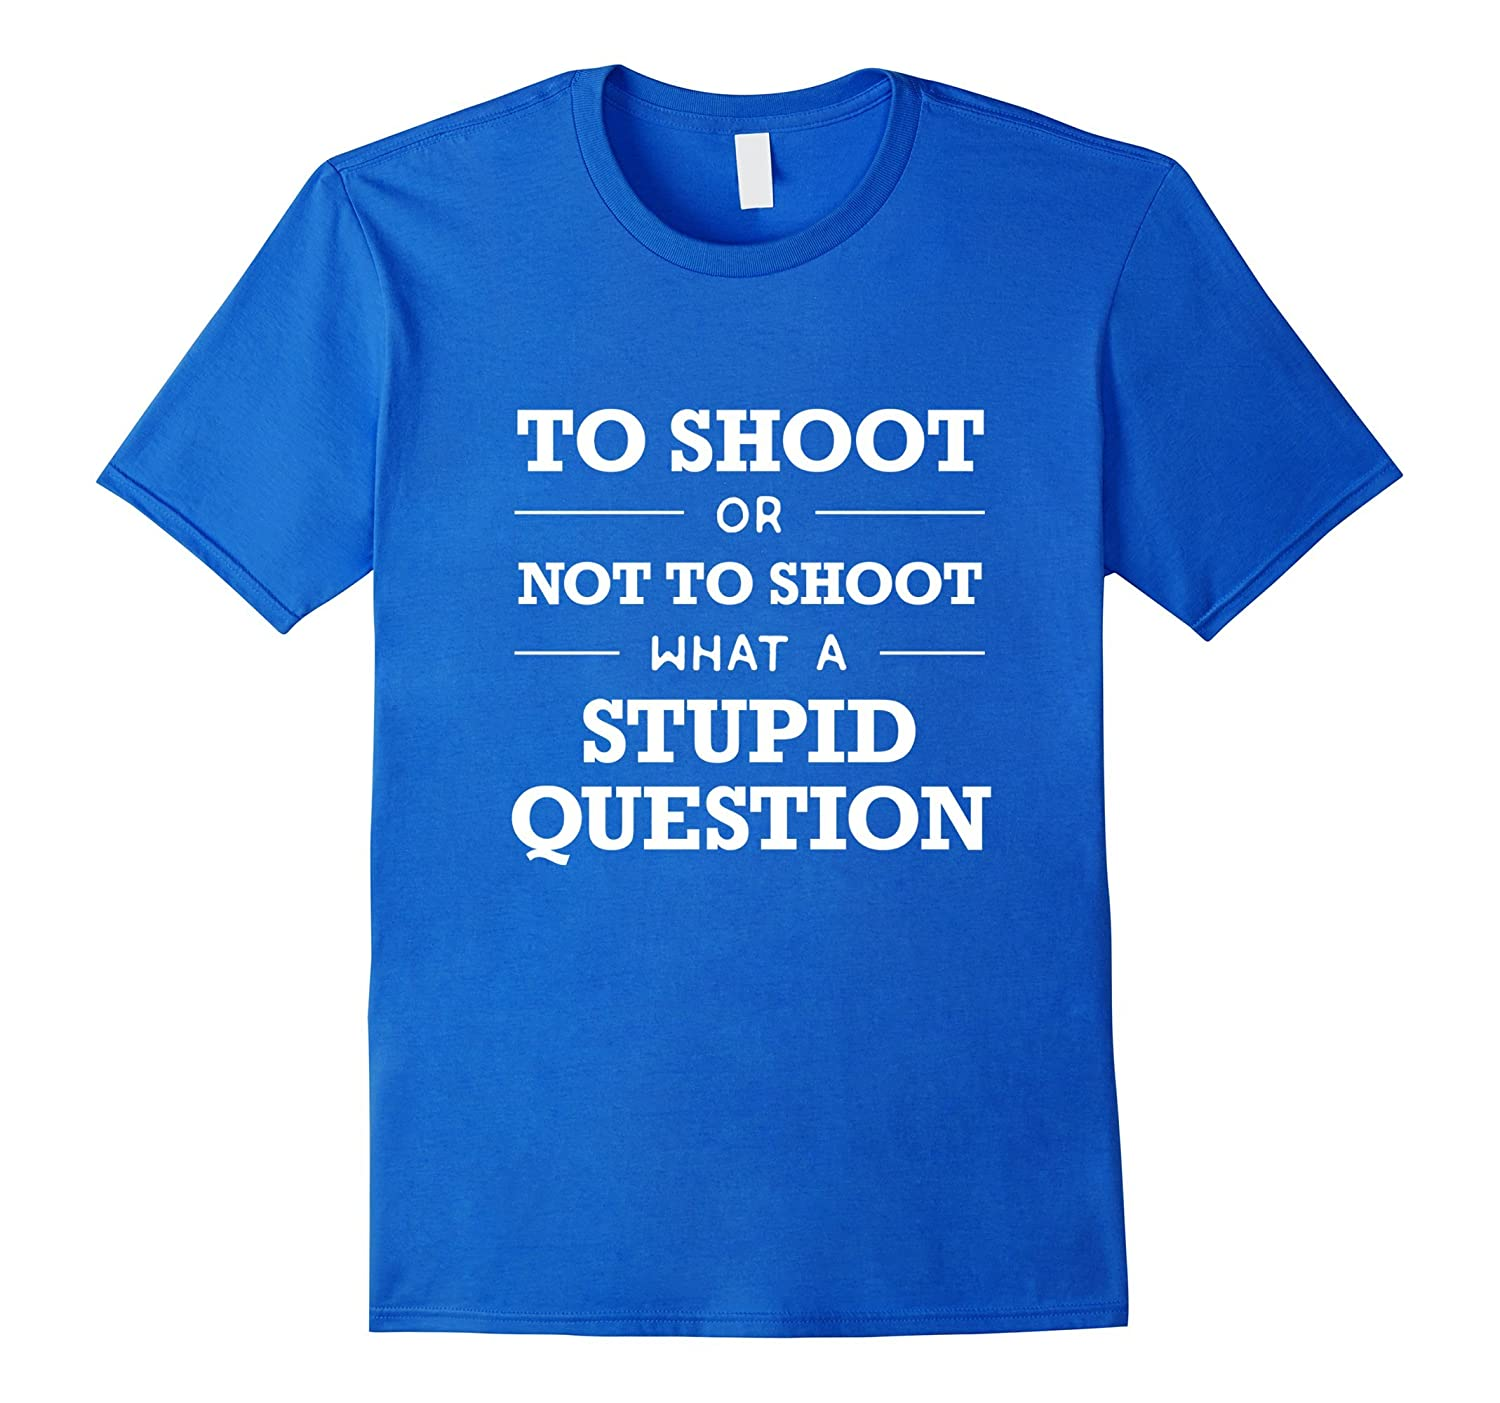 Shooter T Shirt  To Shoot or Not To Shoot, Stupid Question-BN